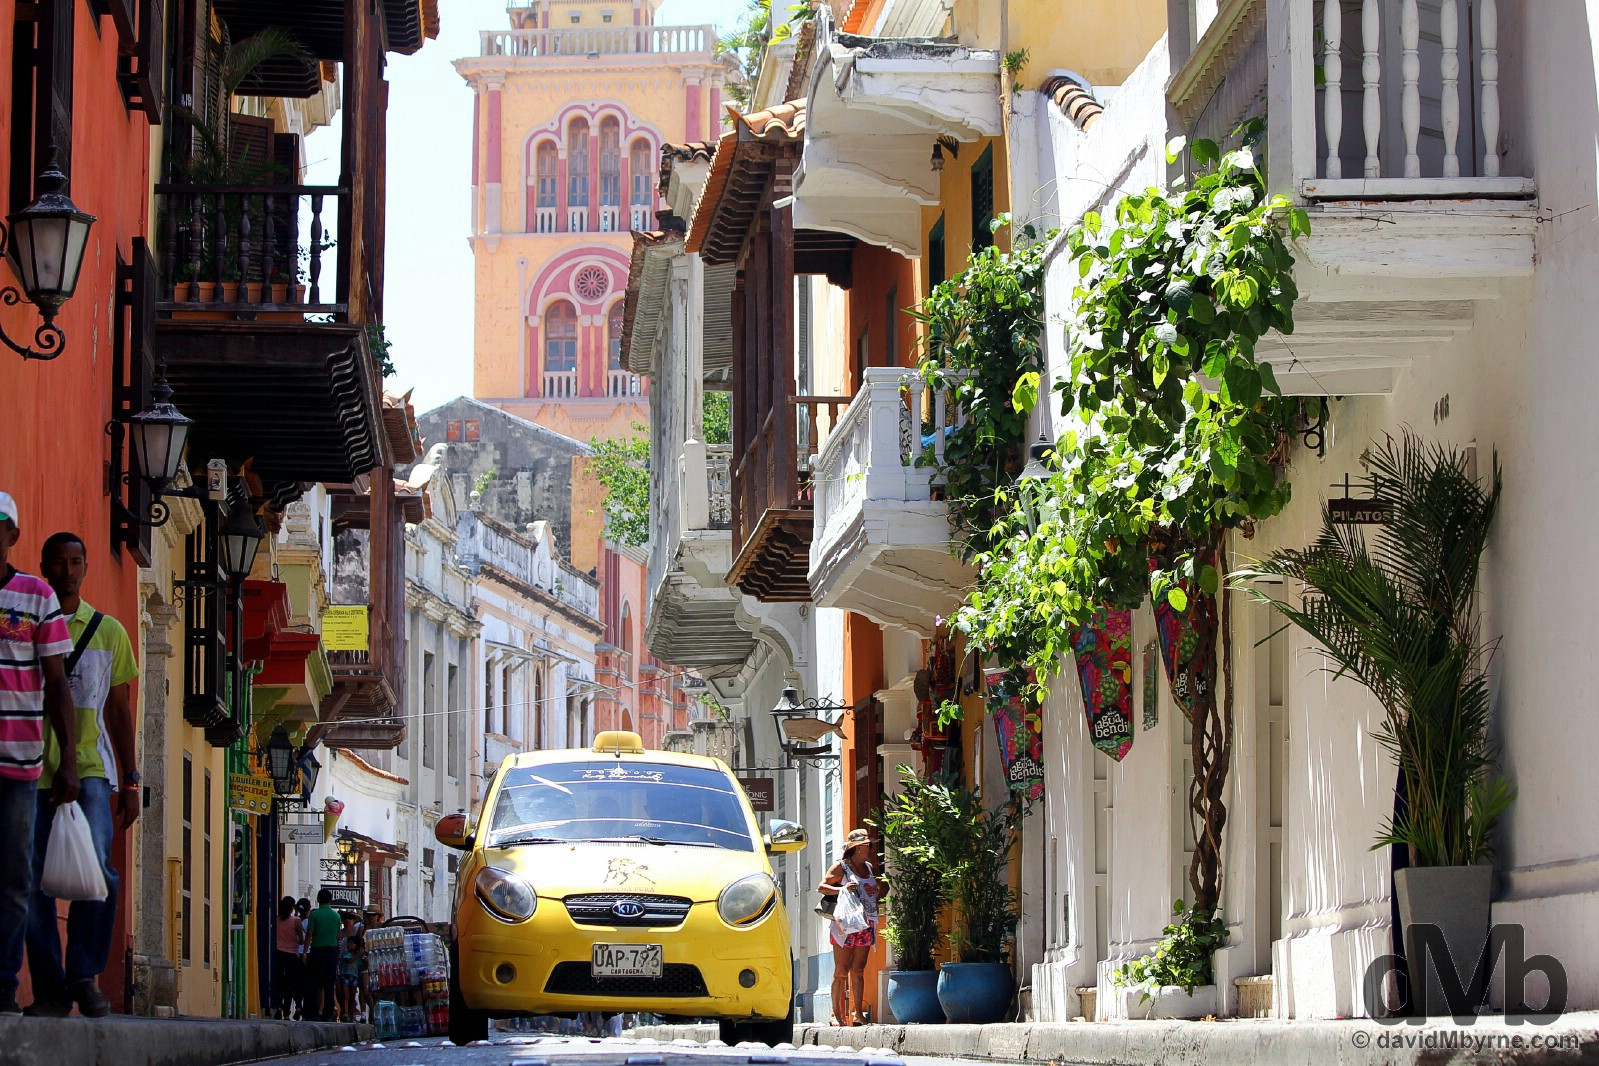 Calle de la Estrella in UNESCO-listed Old Town, Cartagena, Colombia. June 25, 2015.